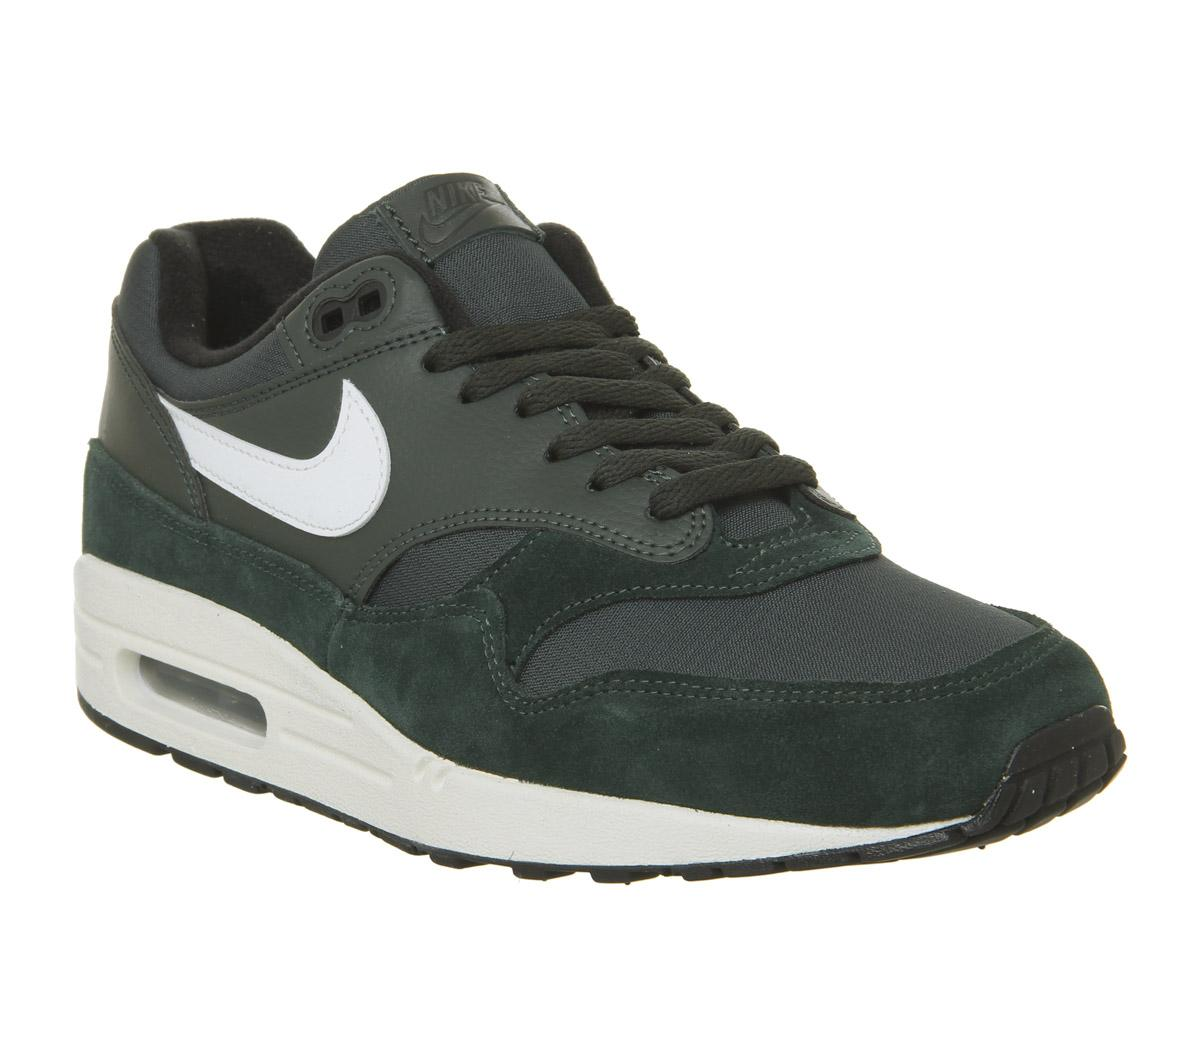 nike grey and green air max 1 trainers